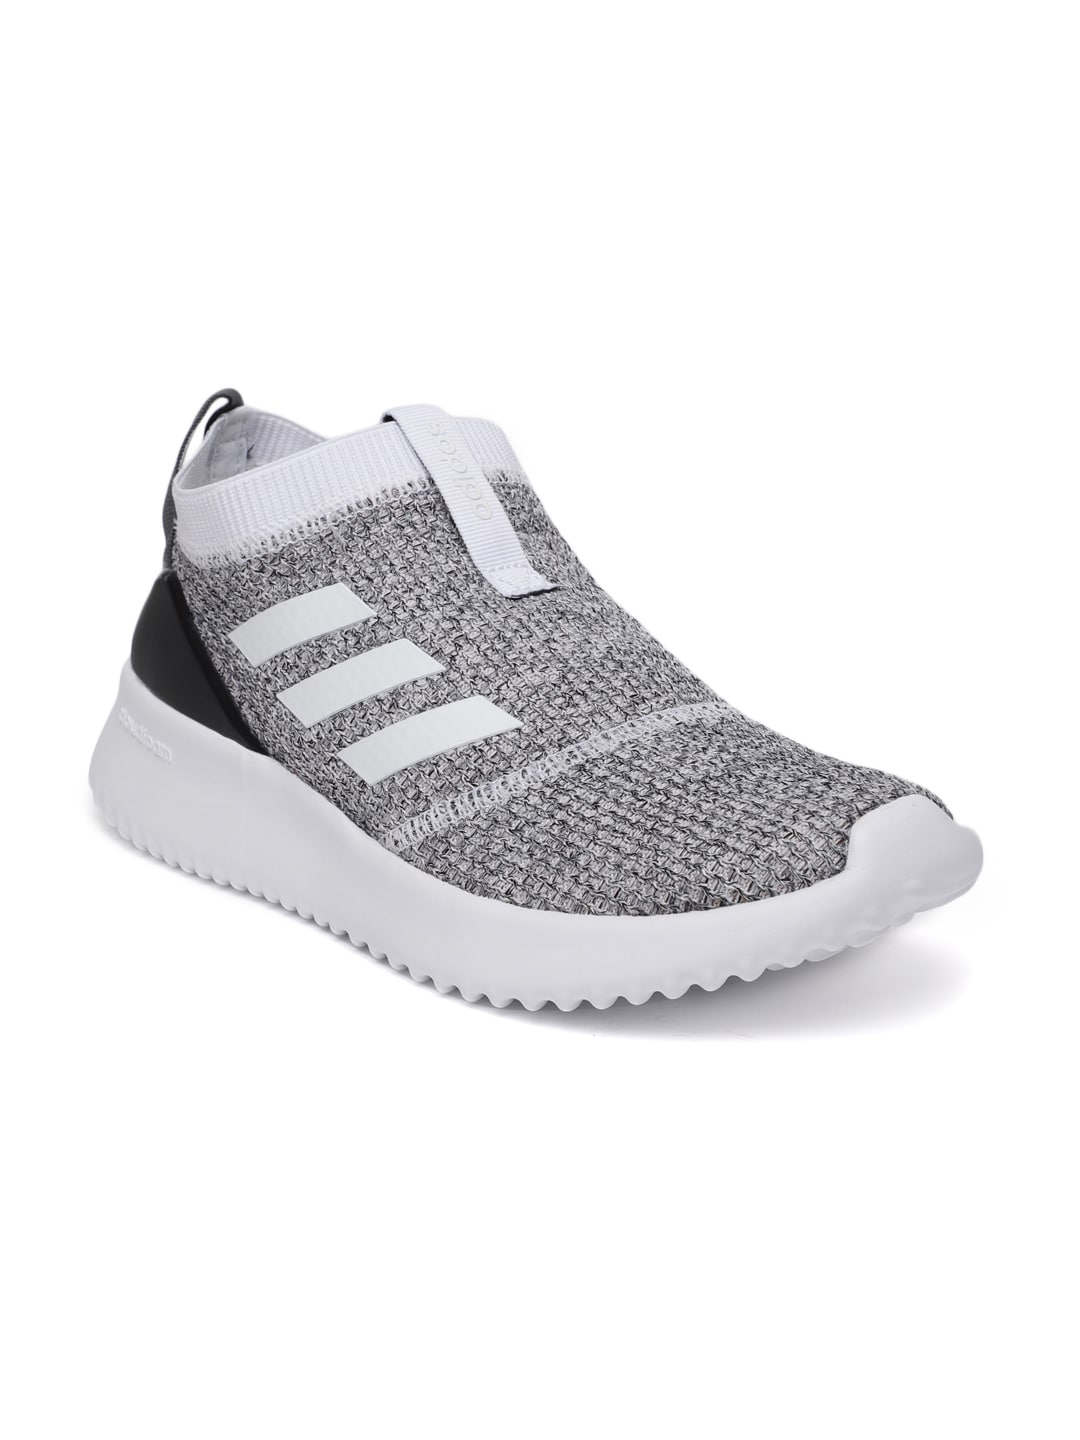 db263a3cb7b6 Adidas Shoes - Buy Adidas Shoes for Men   Women Online - Myntra